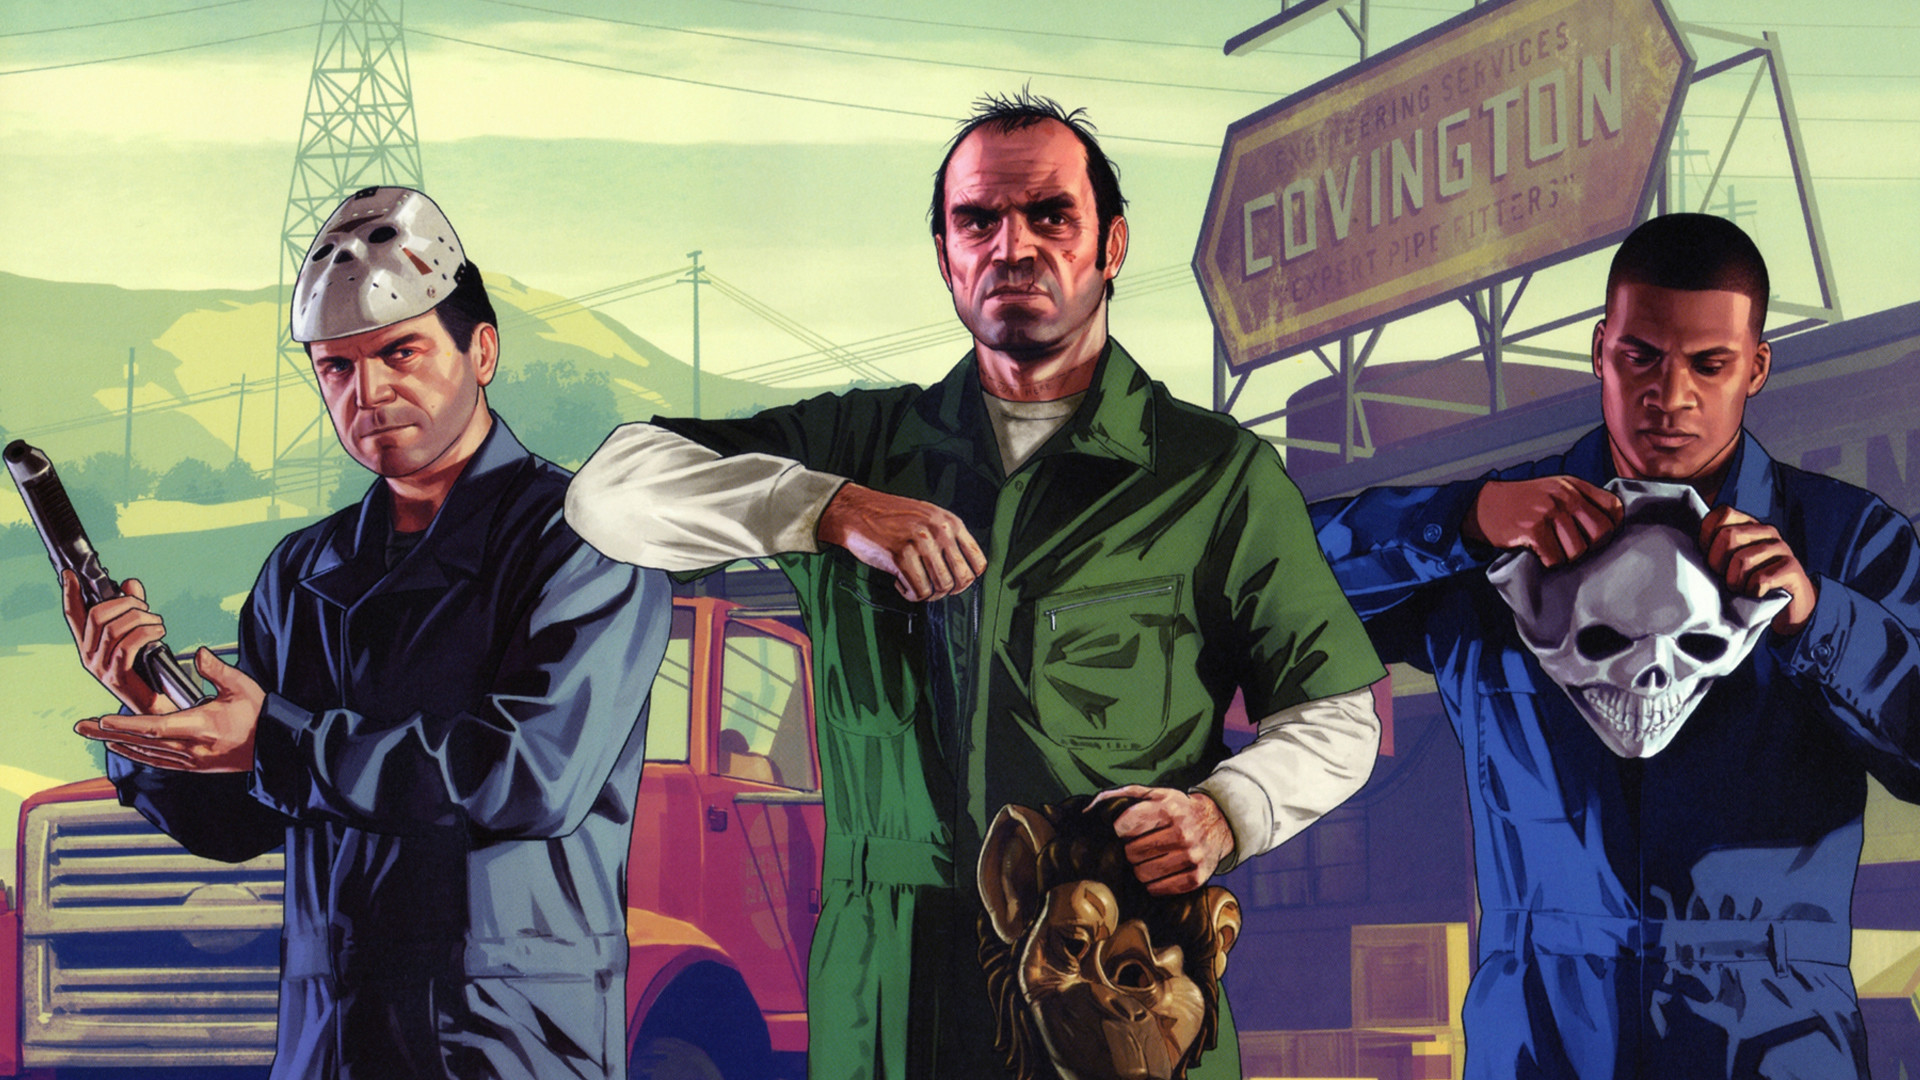 Lion Live Wallpaper Iphone X Gta 5 Live Wallpapers 70 Images